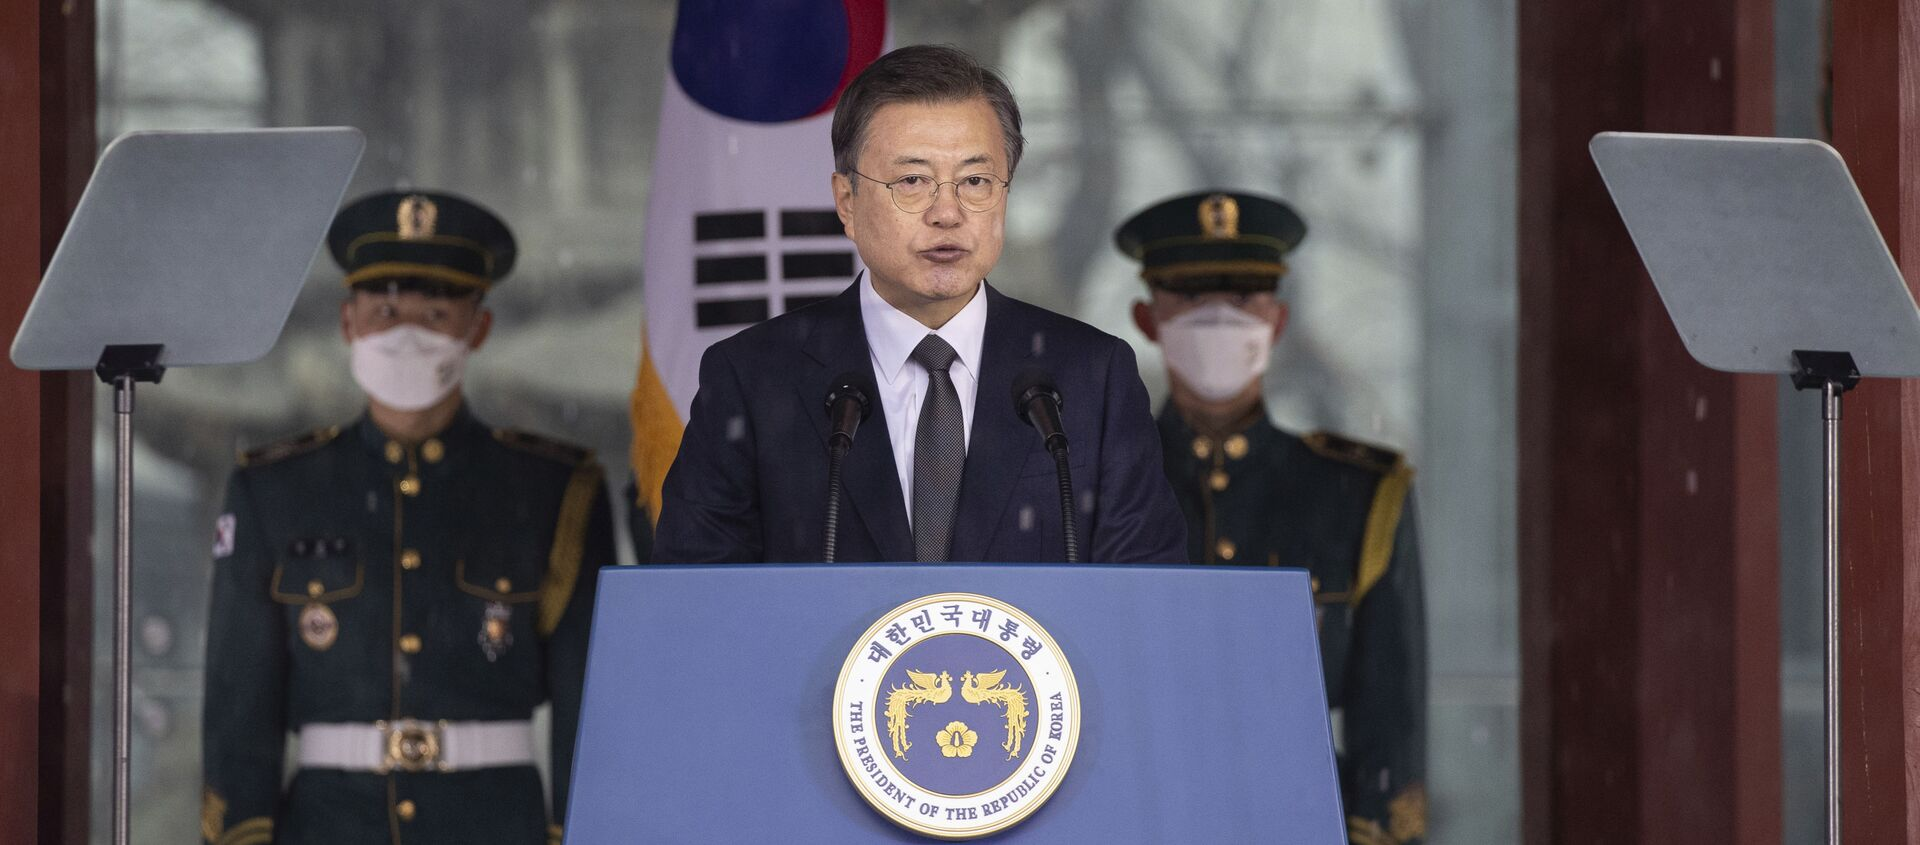 South Korean President Moon Jae-in speaks during a ceremony to mark the March First Independence Movement Day, the anniversary of the 1919 uprising against Japanese colonial rule in Seoul, South Korea, Monday, March 1, 2021. - Sputnik International, 1920, 14.06.2021